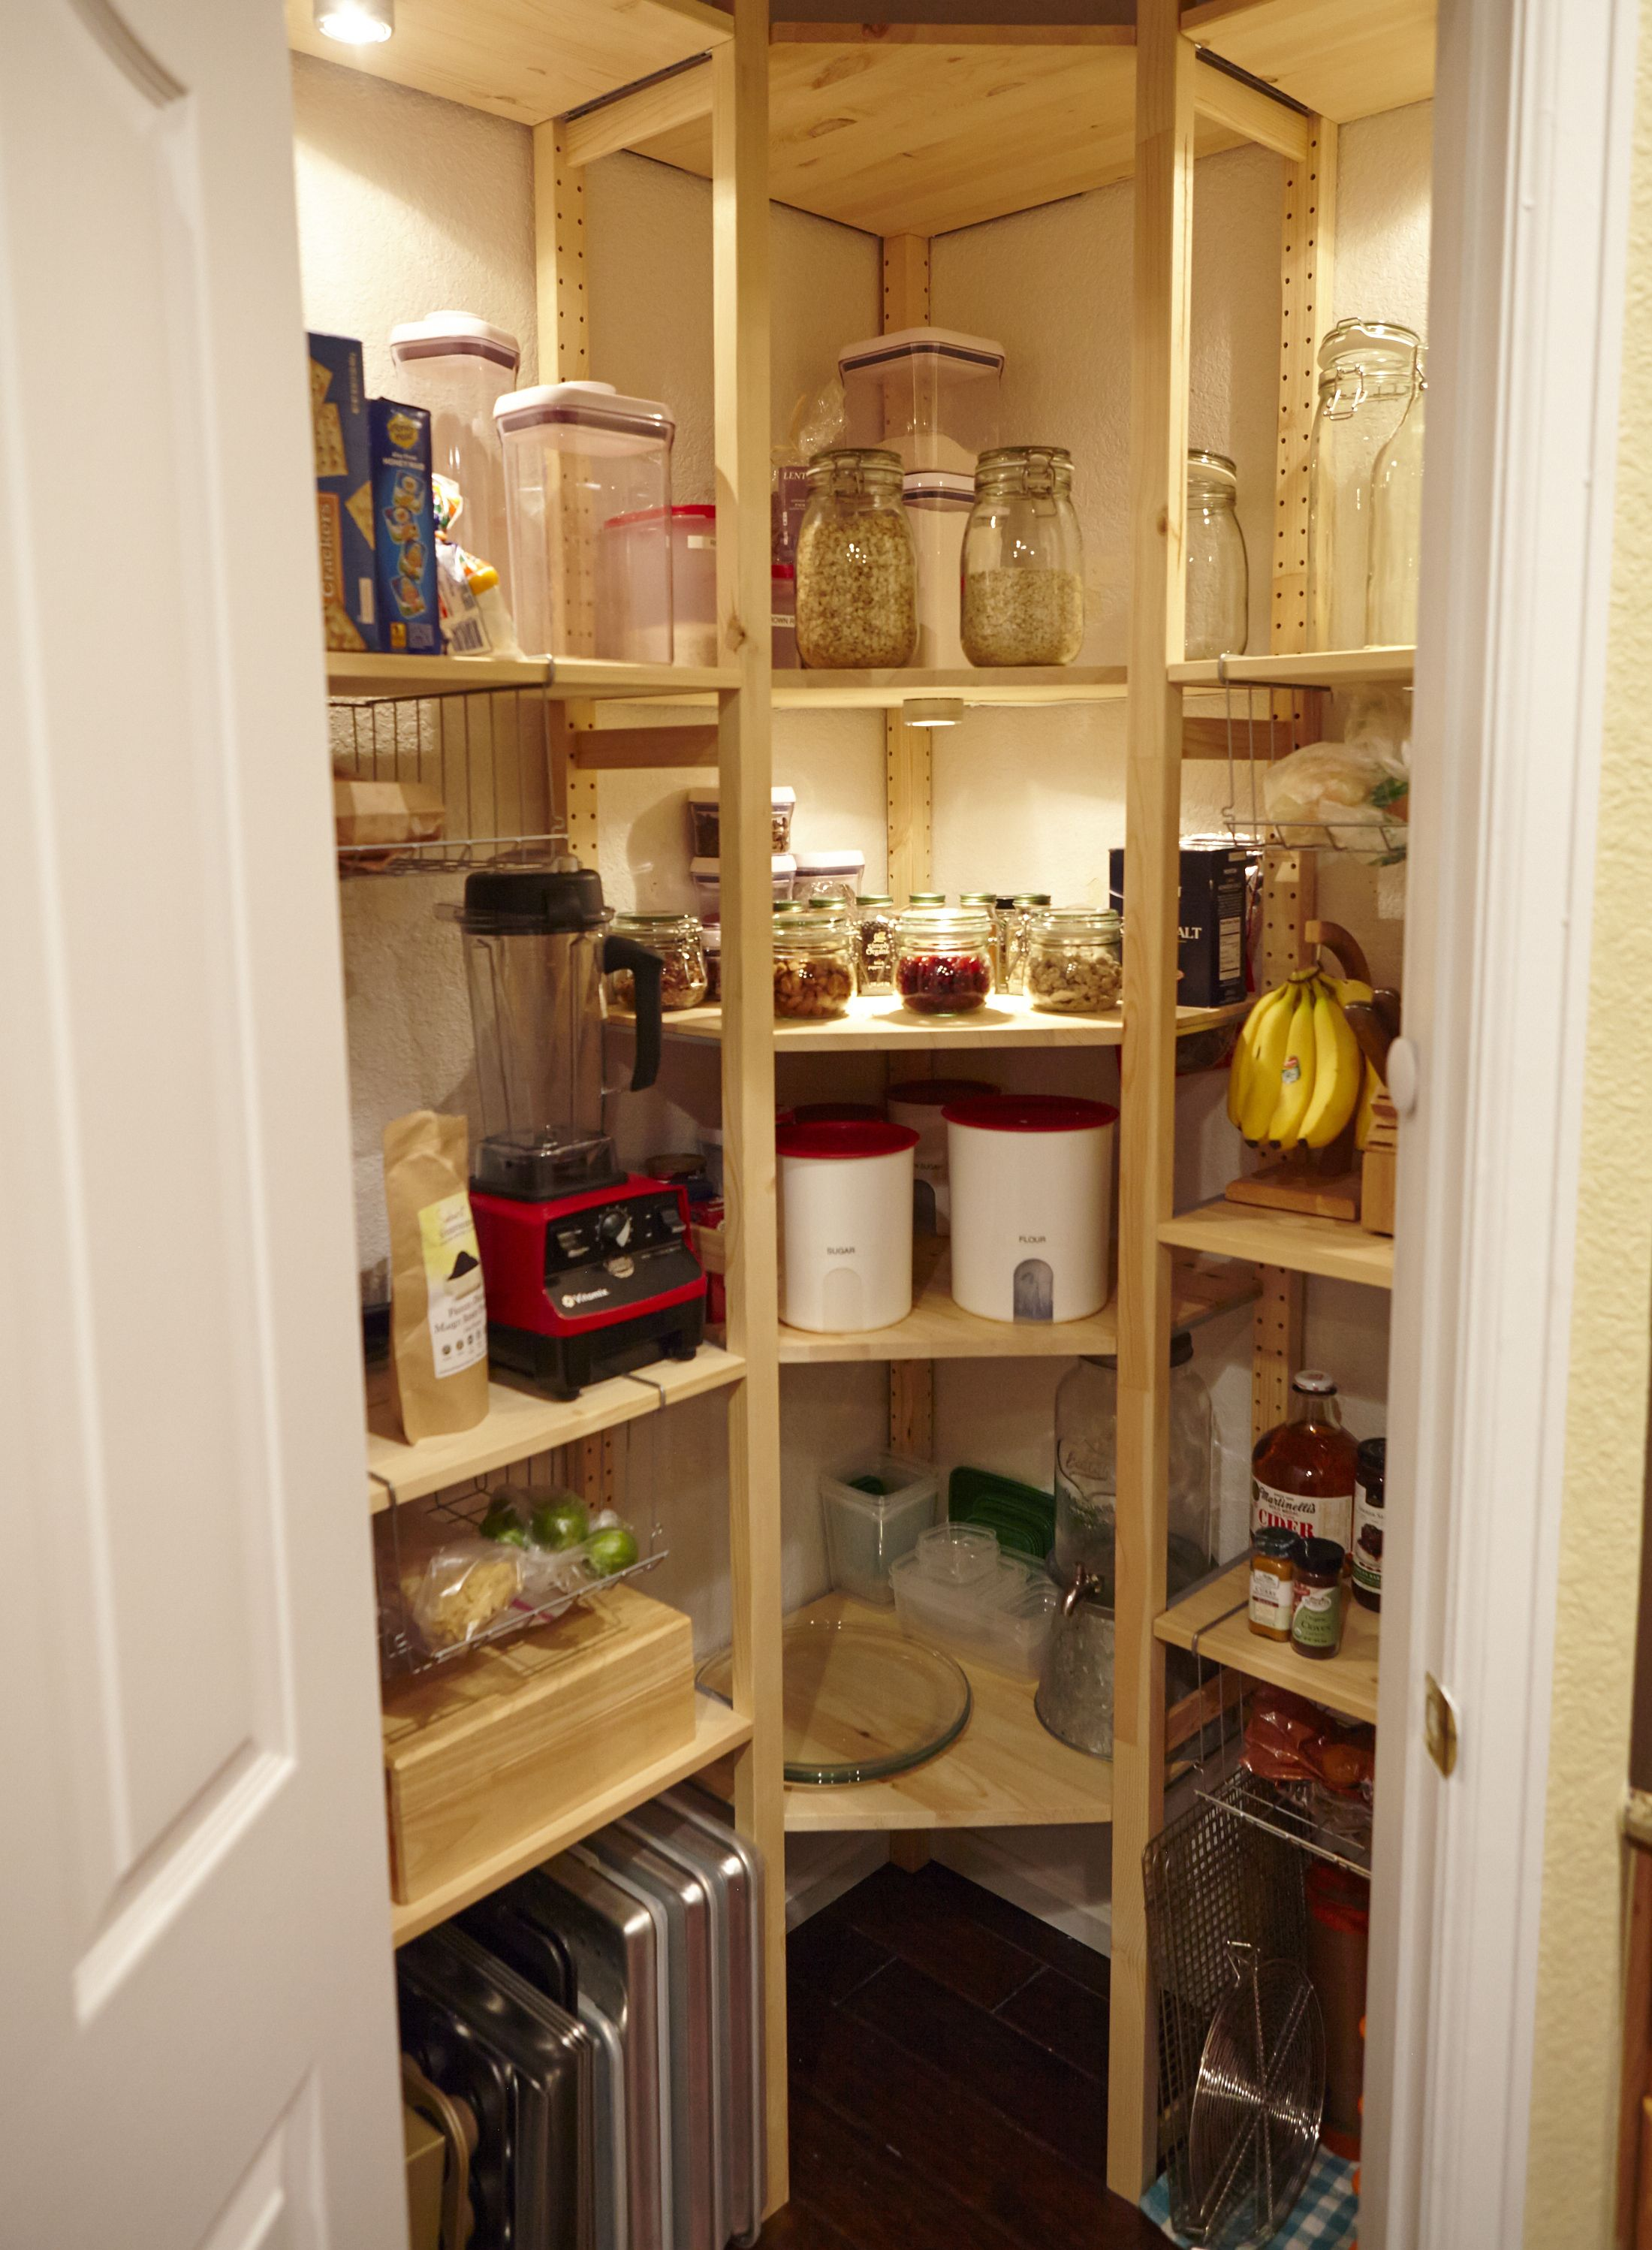 Ikea Ivar Built In Pantry All Components Purchased Separately